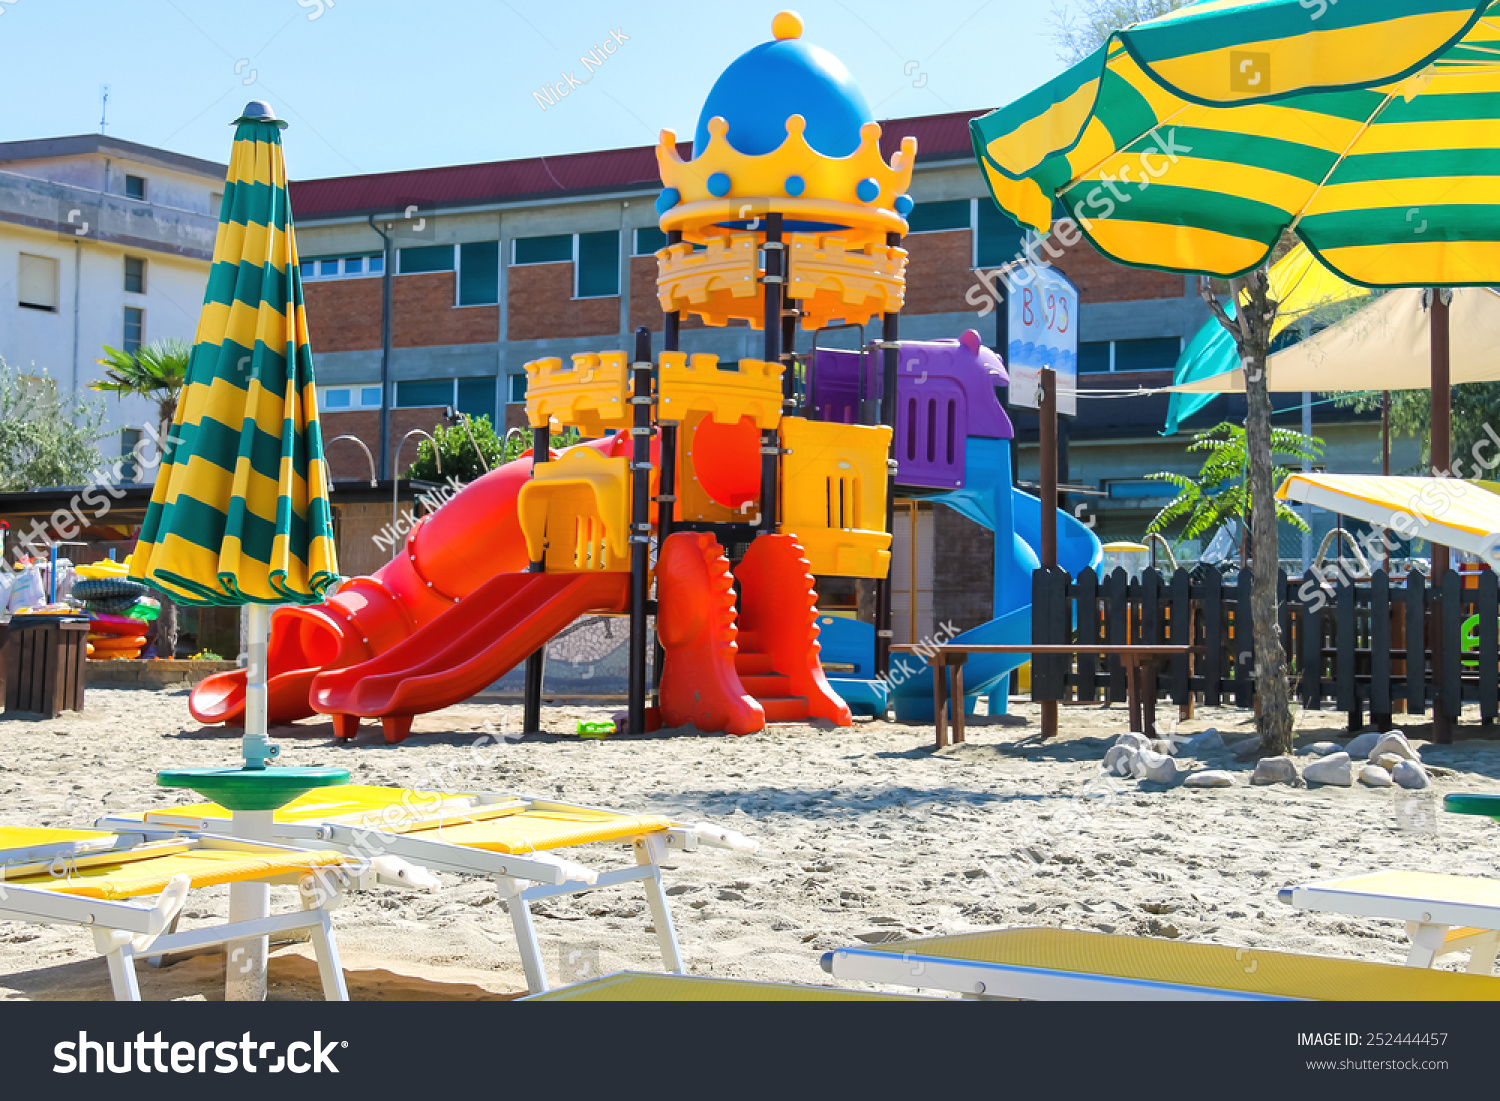 Childrens Playground Beach Chairs Umbrellas On Stock Photo Edit Now 252444457